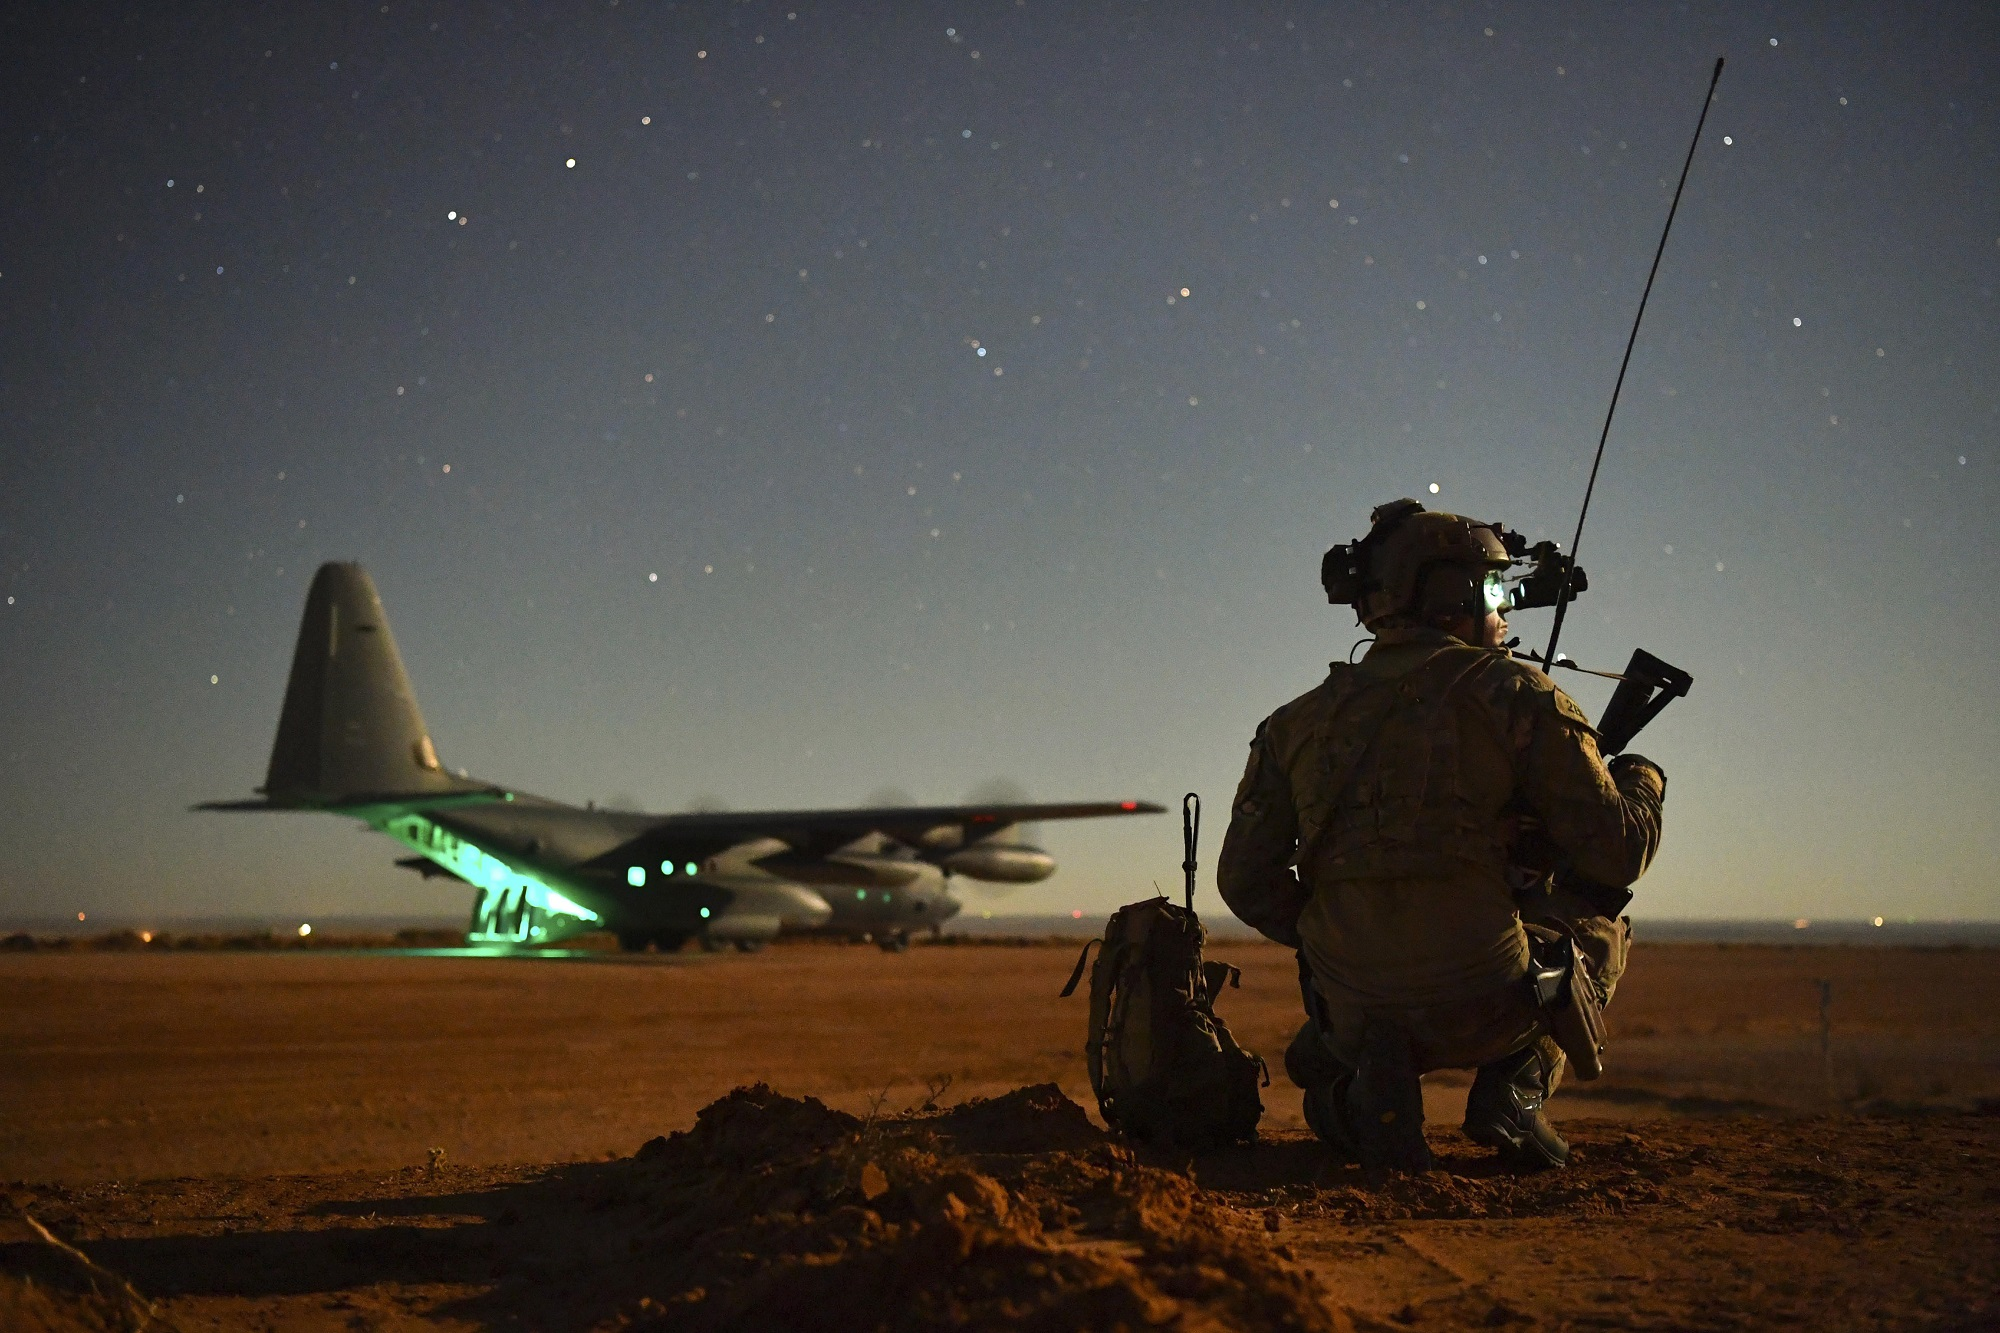 A Special Tactics operator guides a 27th Special Operations Wing MC-130J onto a runway during an exercise Nov. 6, 2020, at Melrose Air Force Range, N.M. (Staff Sgt. Ridge Shan/Air Force)